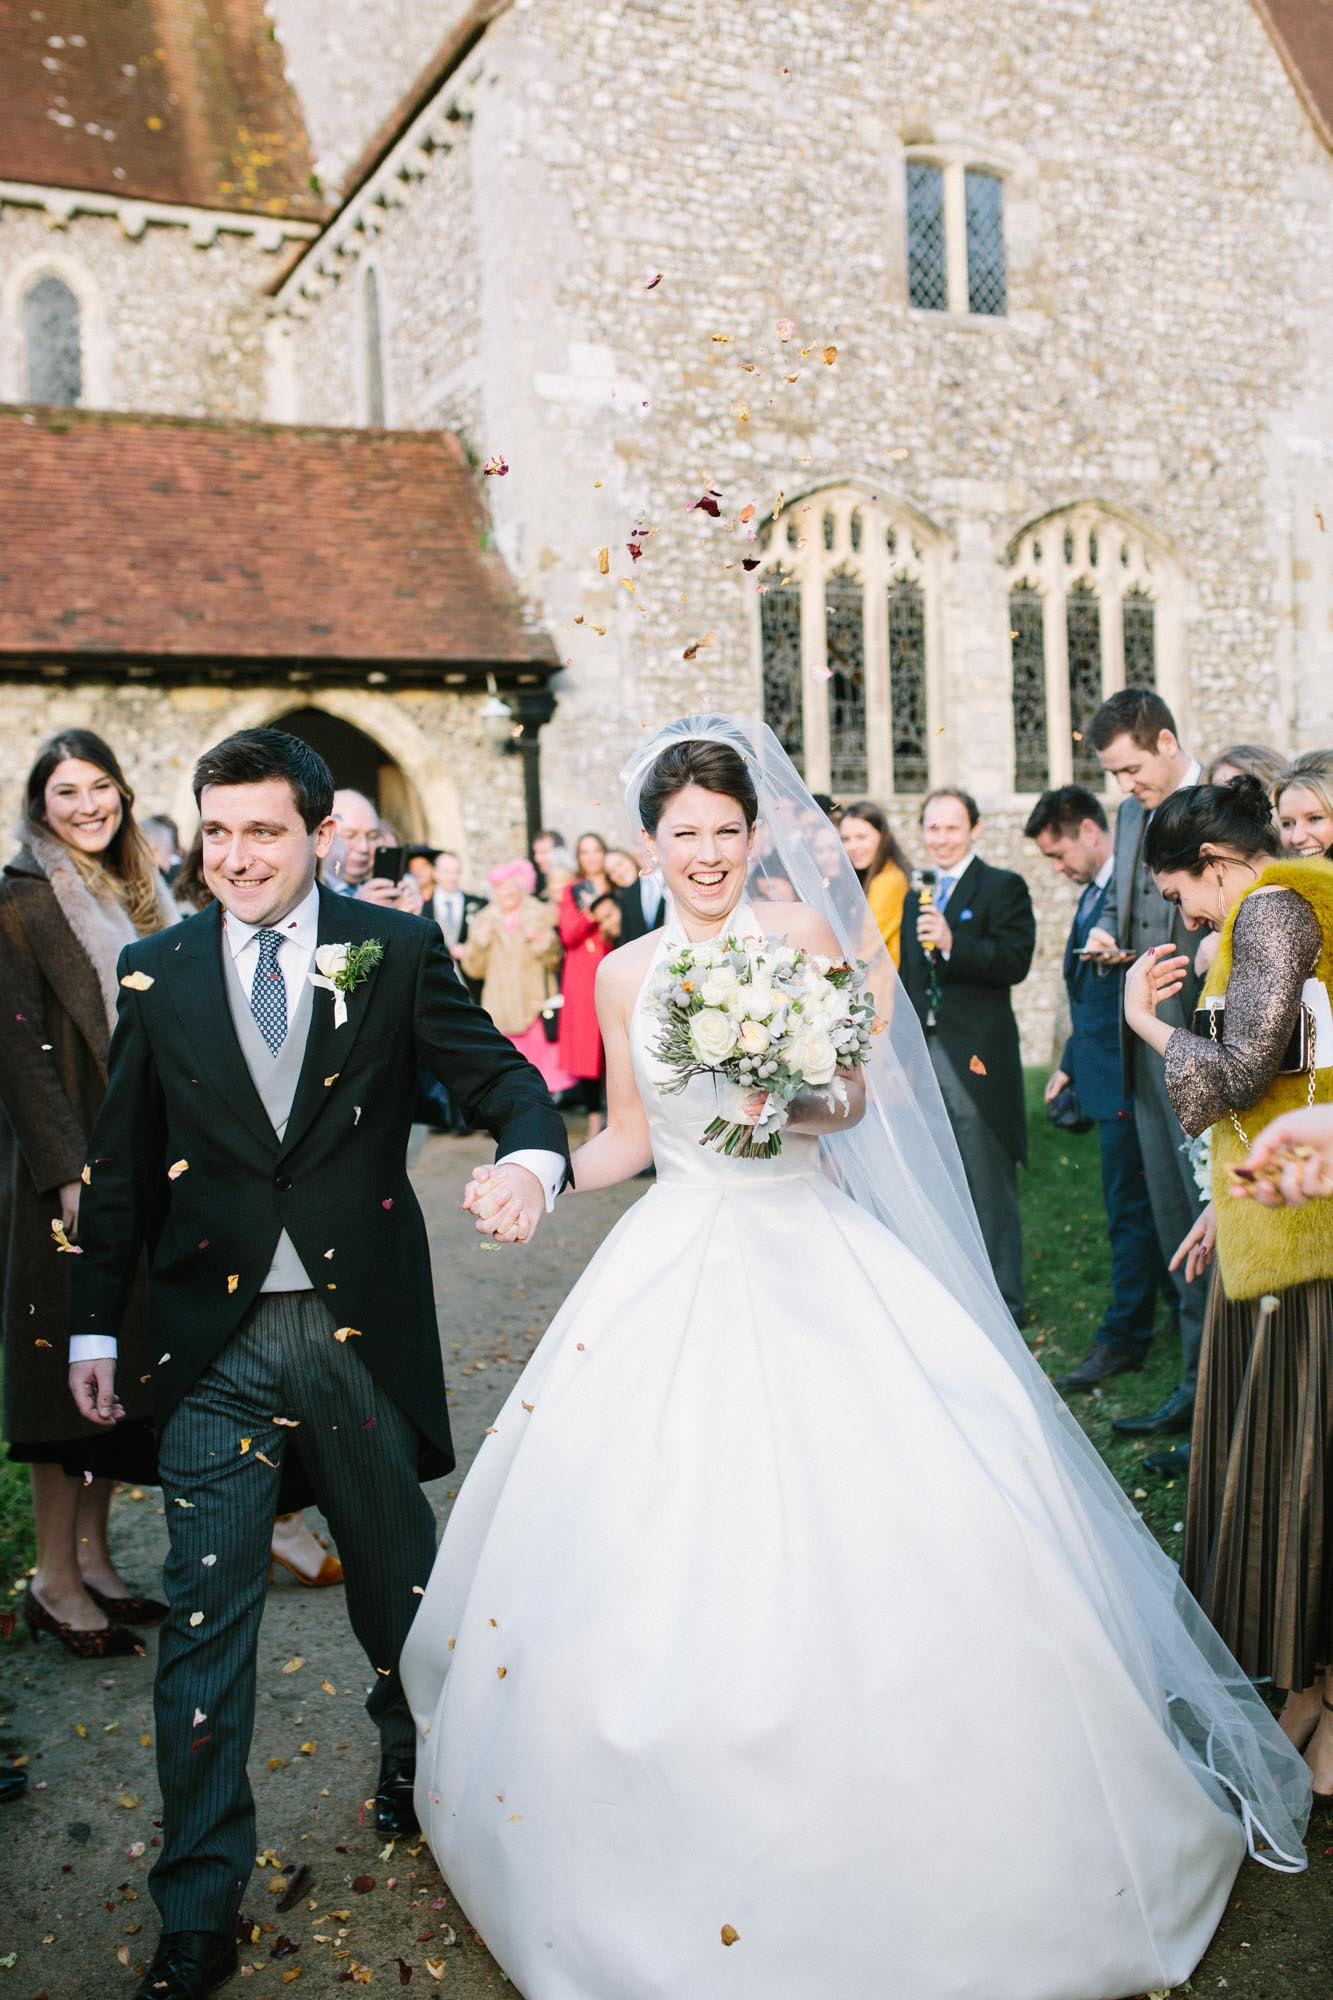 Bride and groom smiling happily and walking through confetti at Boxgrove Priory